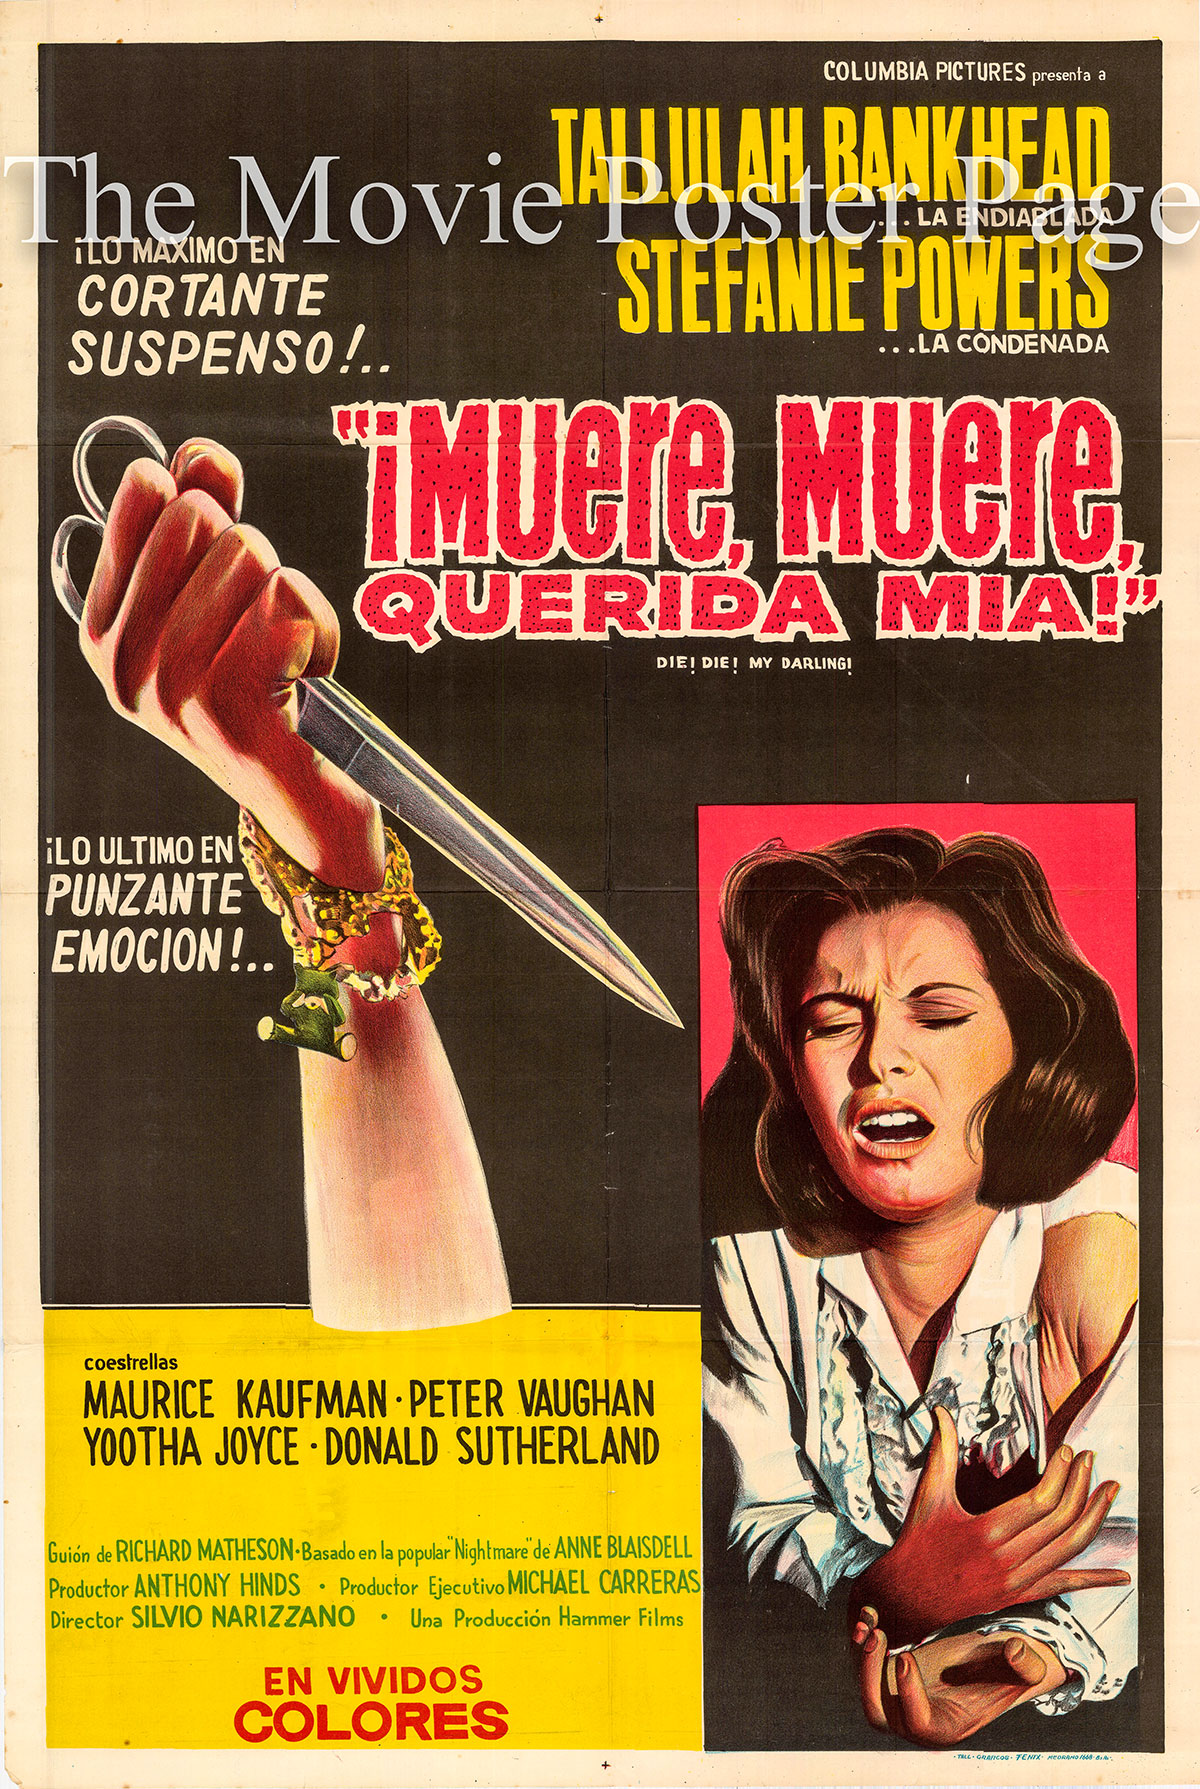 Pictured is an Argentine promotional poster for the 1965 Silvio Narizzano film Die! Die! My Darling! starring Tallulah Bankhead as Mrs. Trefoile.